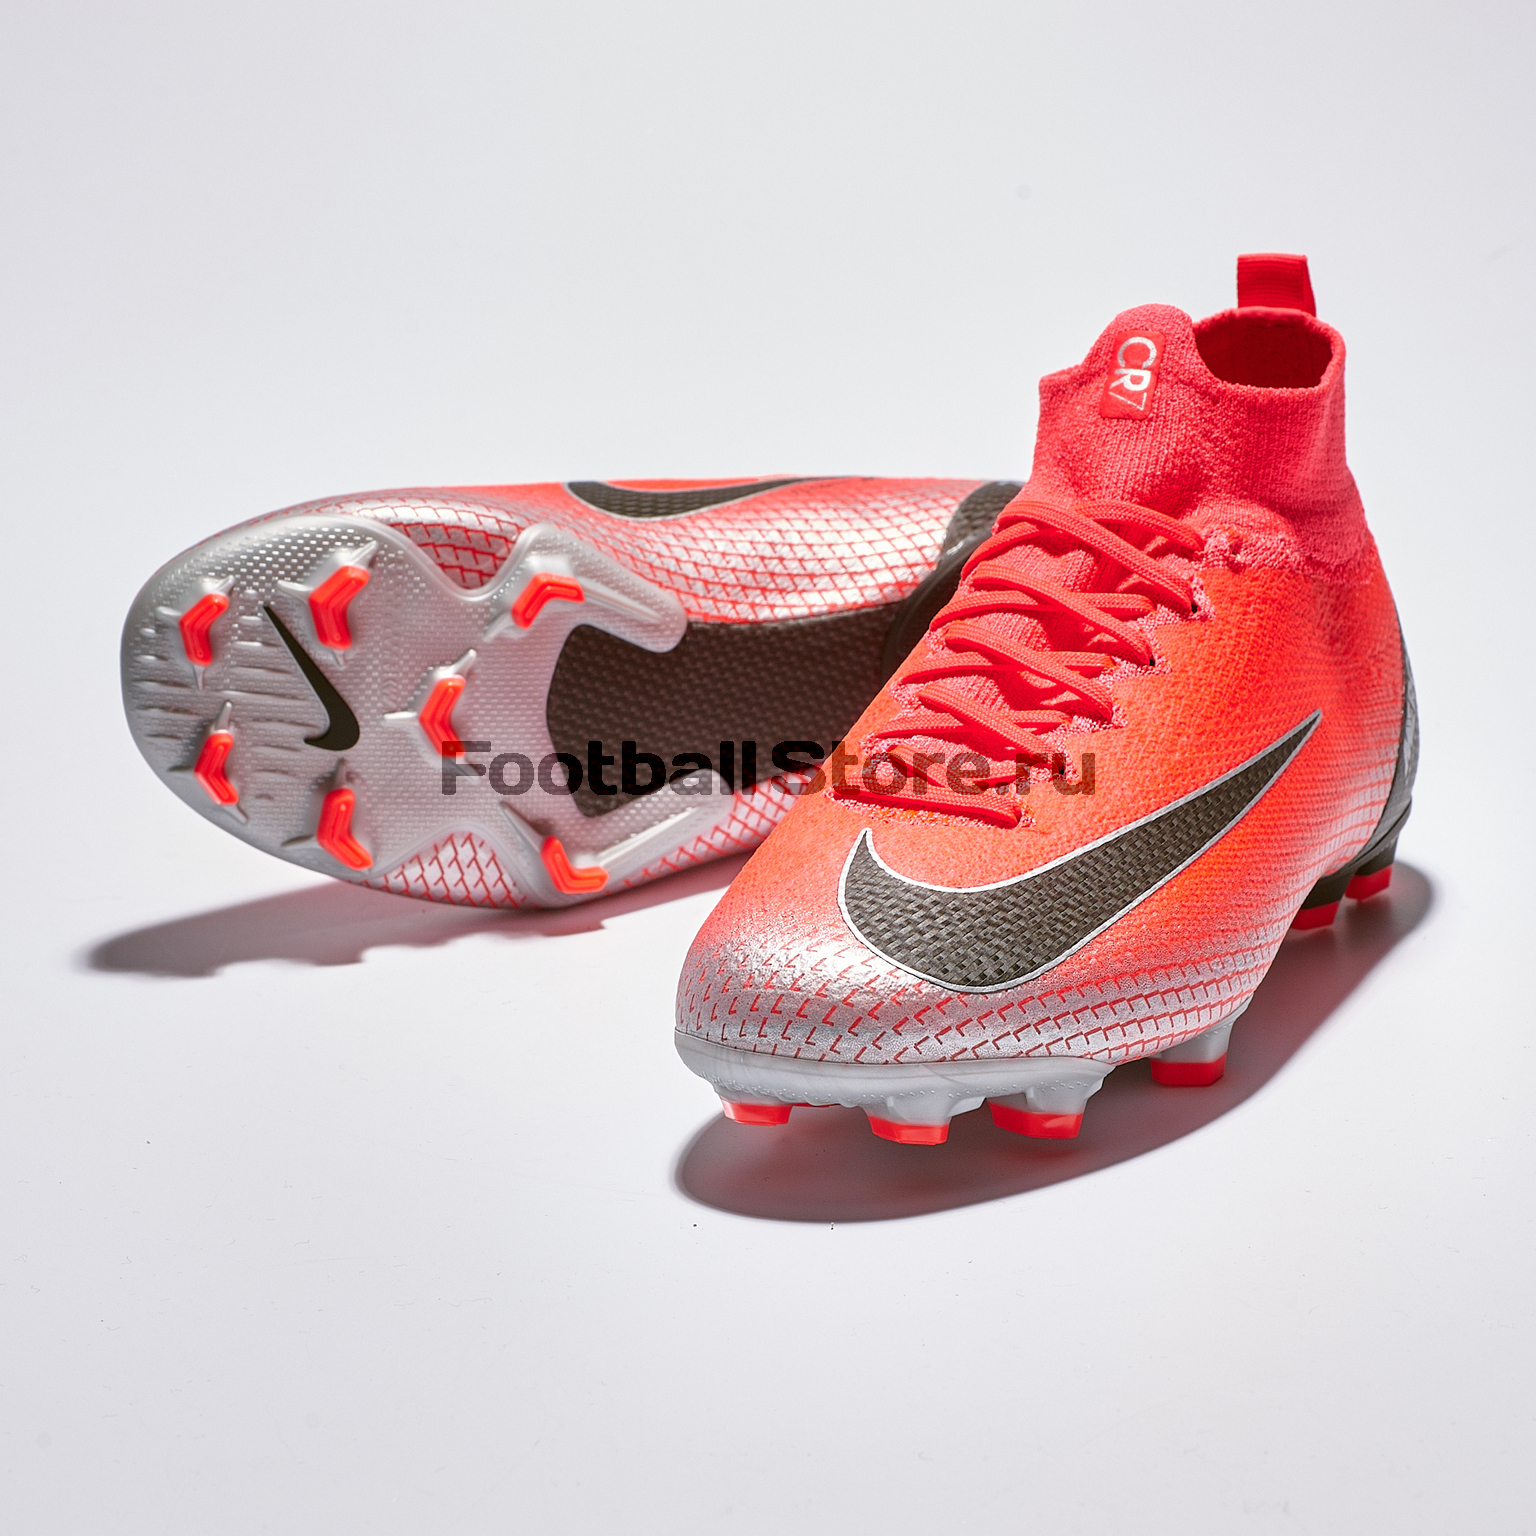 Бутсы детские Nike Superfly 6 Elite CR7 FG AJ3086-600 бутсы детские nike superfly academy gs cr7 fg mg aj3111 600